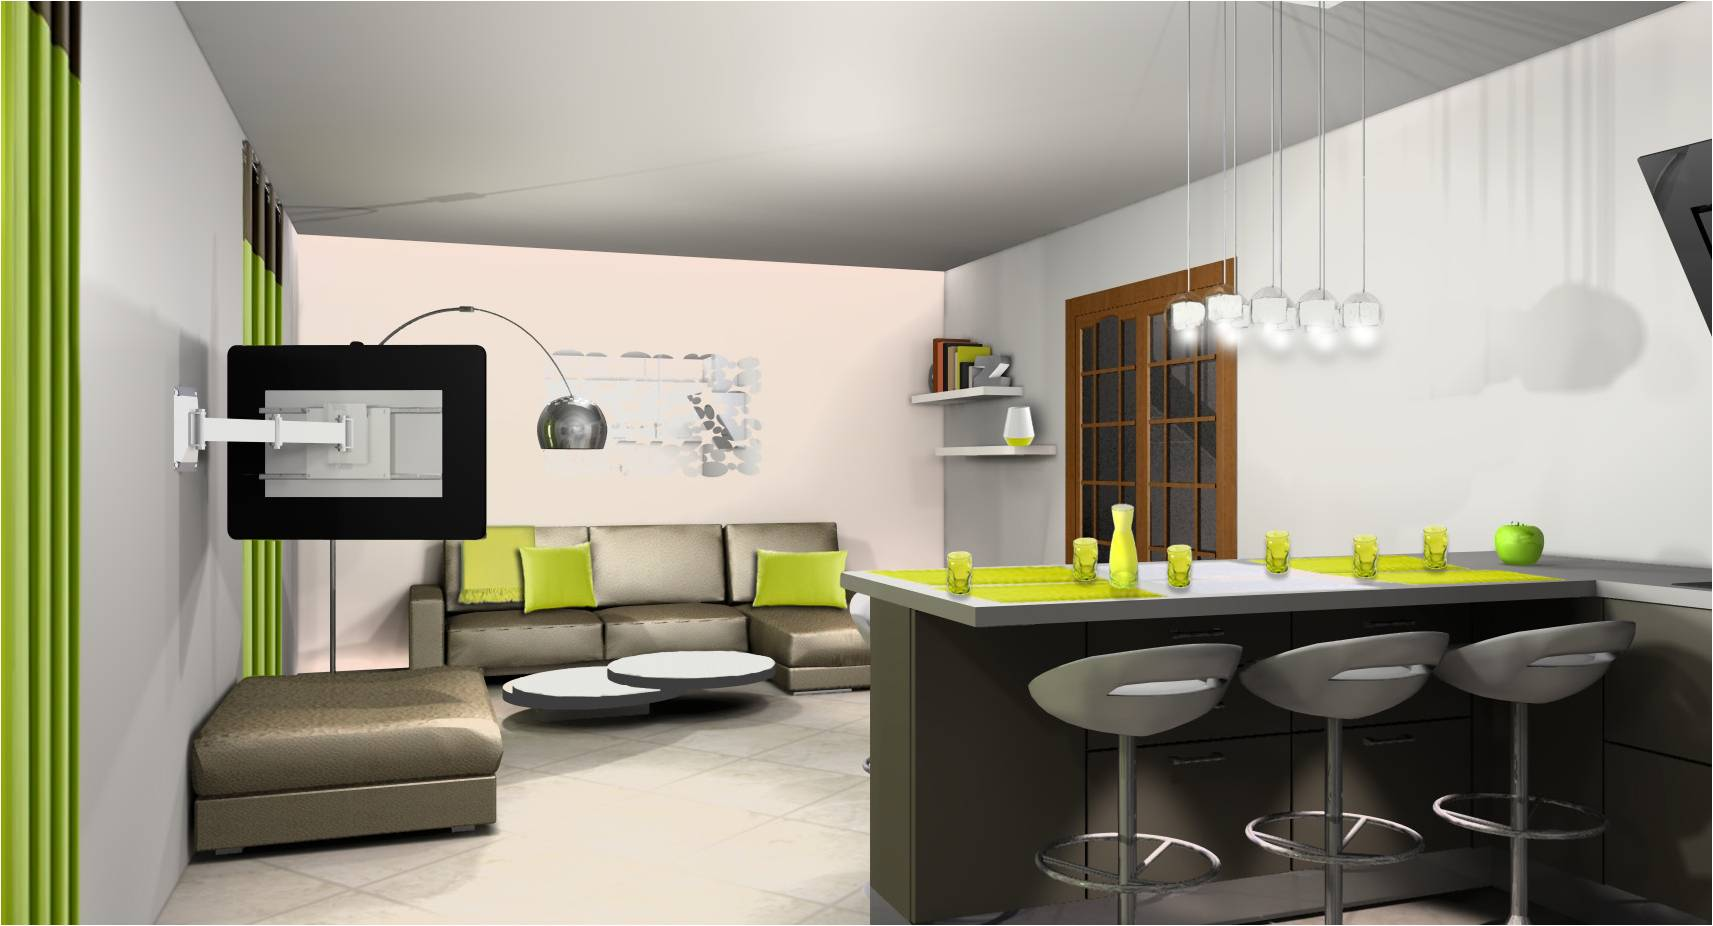 D coration cuisine salon exemples d 39 am nagements - Modele de decoration salon ...